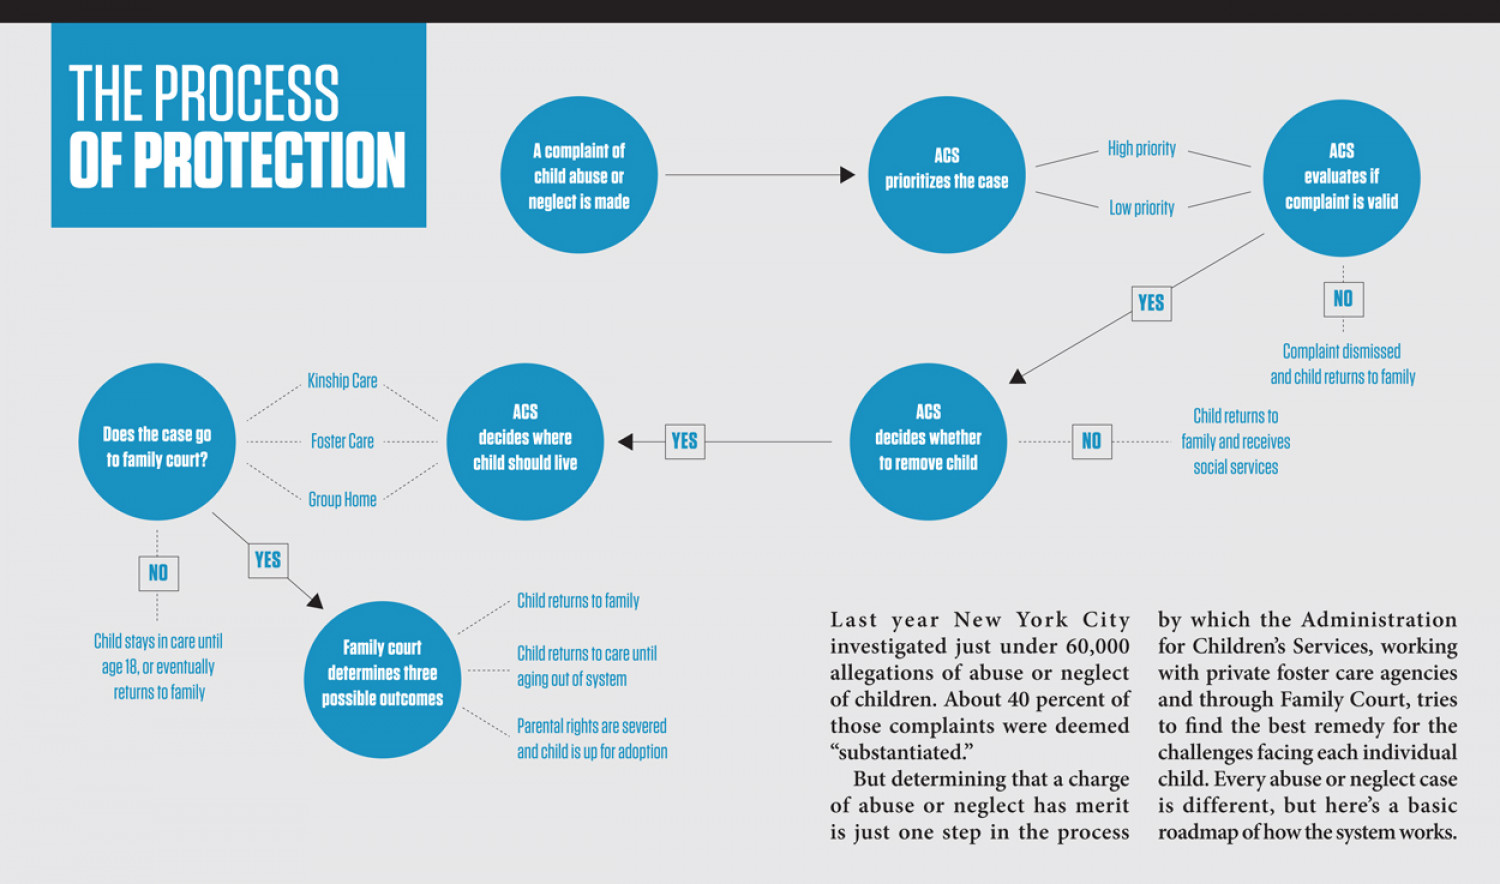 The Process of Protection, How New York City Protects its Children Infographic